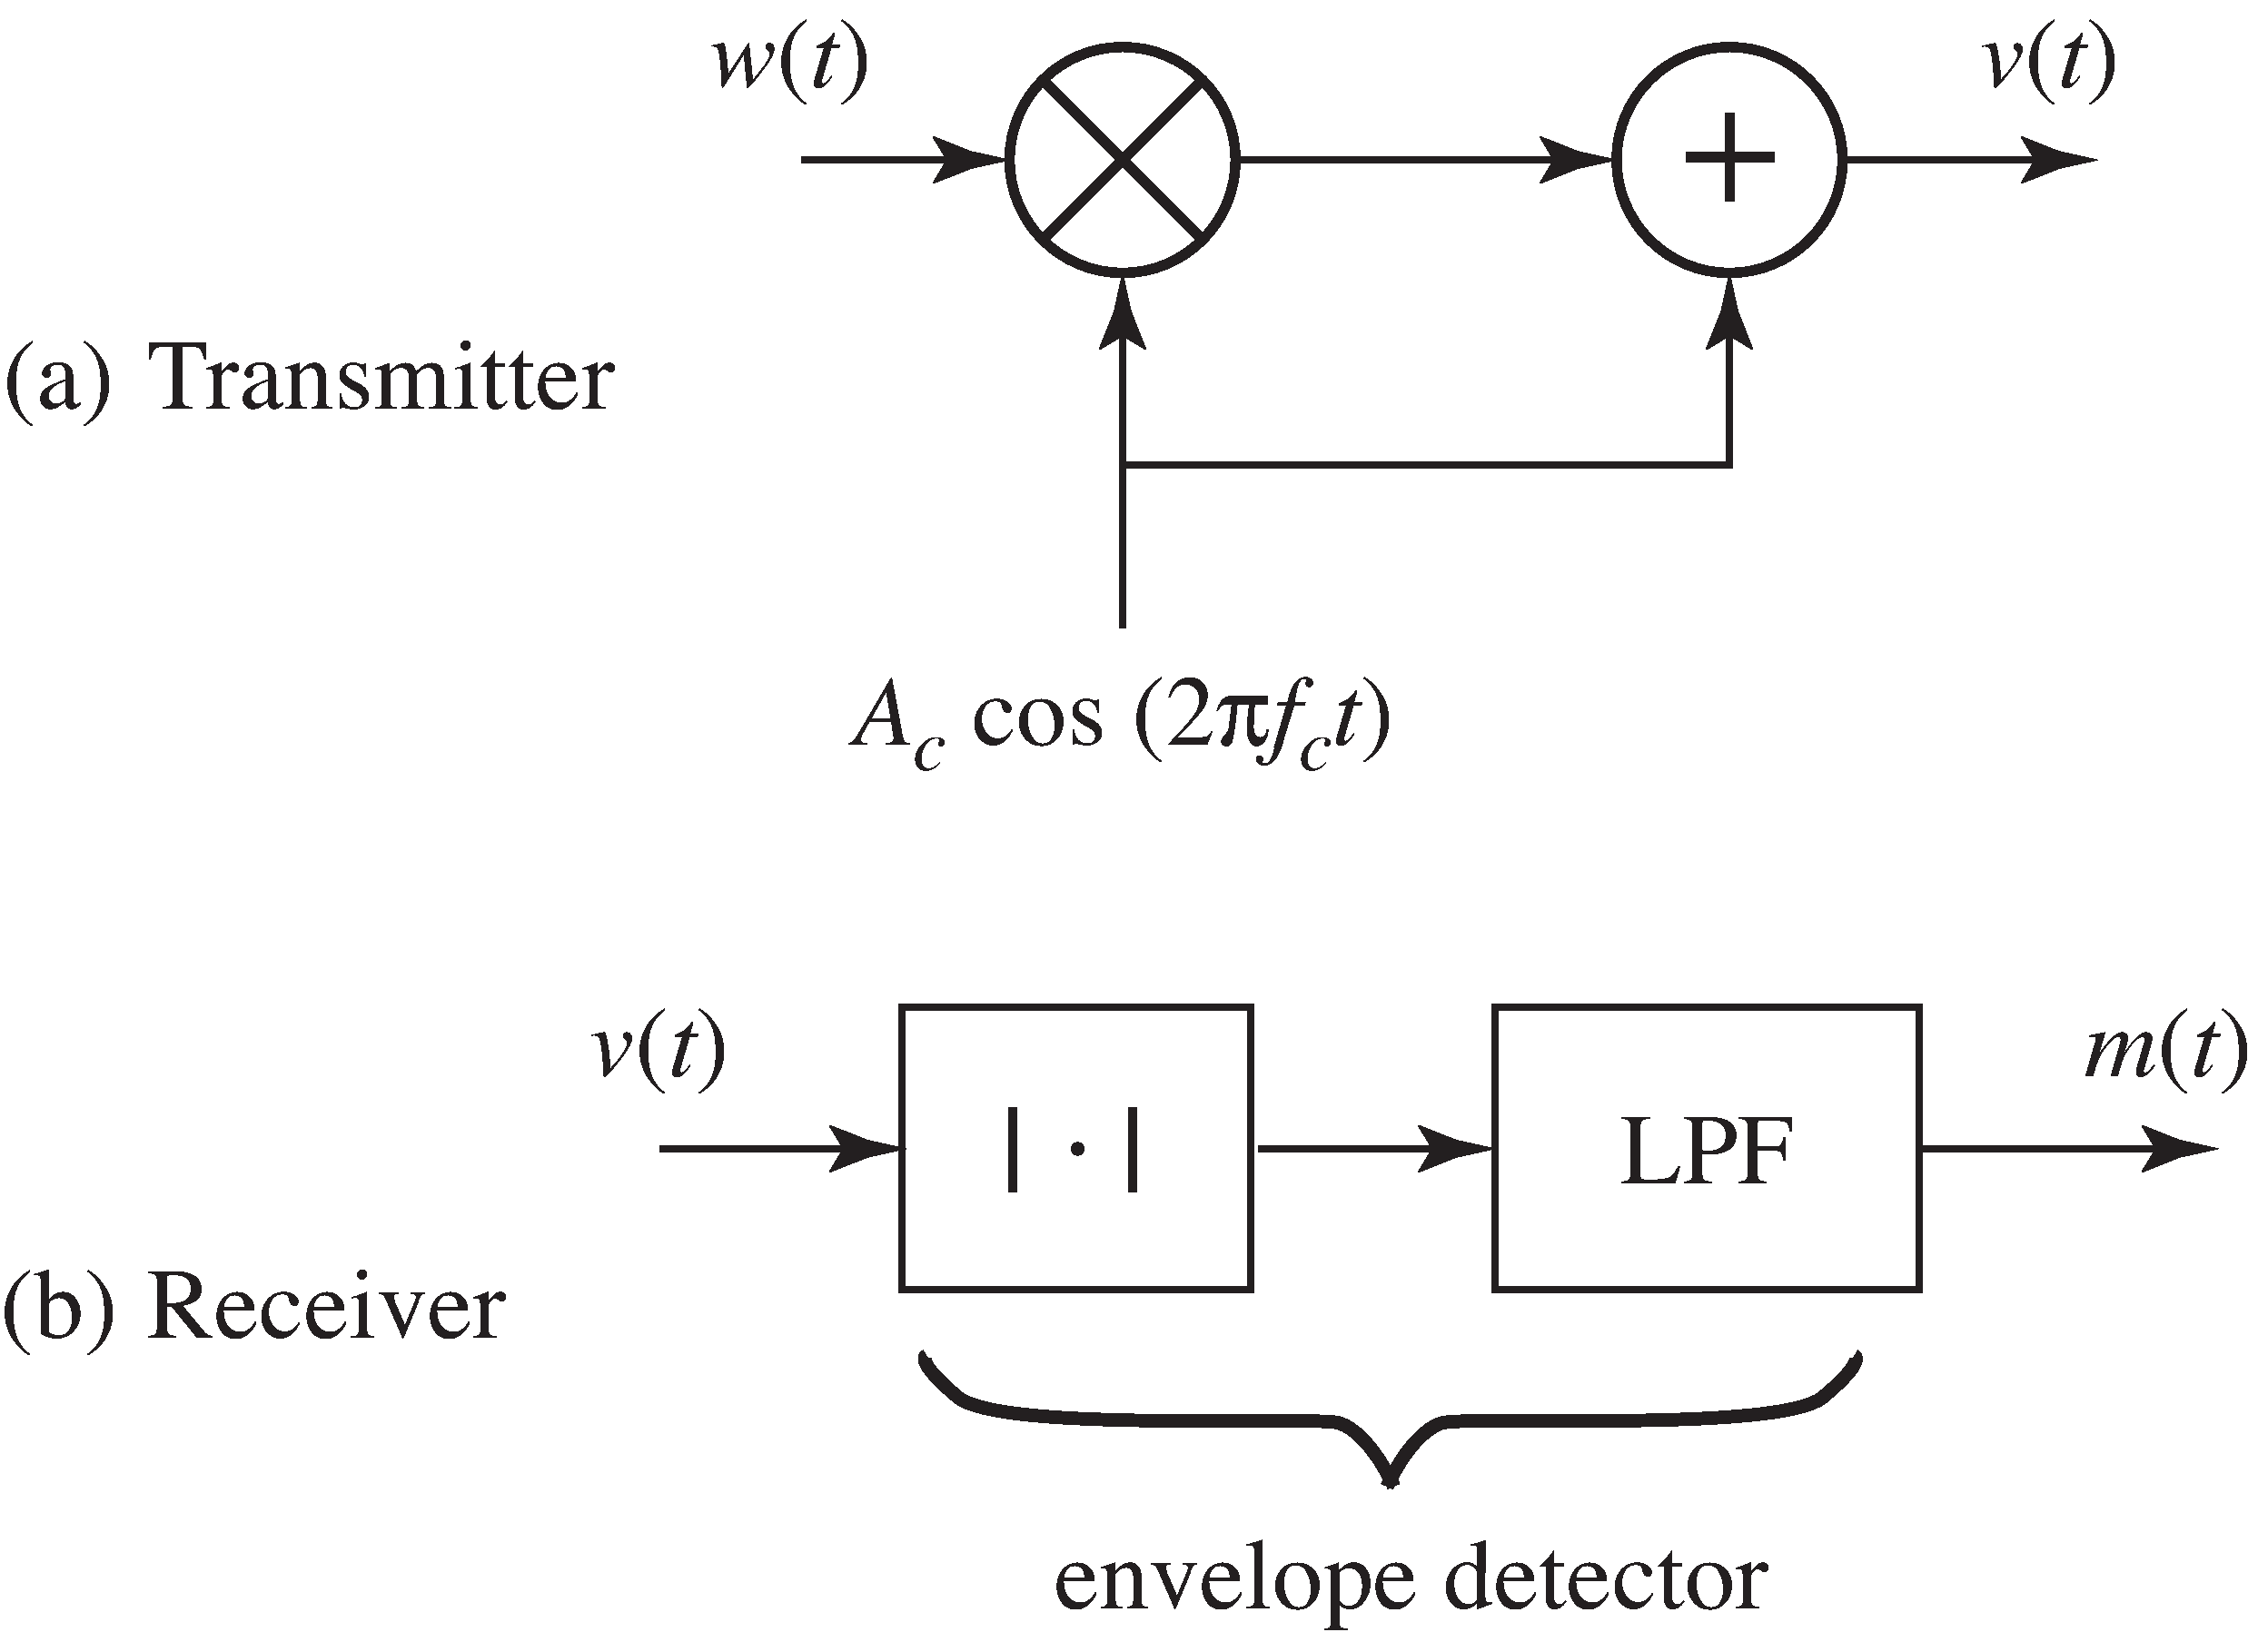 A communications system using amplitude modulation with a large carrier. In the transmitter (a), the message signal w(t) is modulated by a carrier wave at frequency f_c and then added to the carrier to give the transmitted signal v(t). In (b), the received signal is passed through an envelope detector consisting of an absolute value nonlinearity followed by a lowpass filter. When all goes well, the output m(t) of the receiver is approximately equal to the original message.